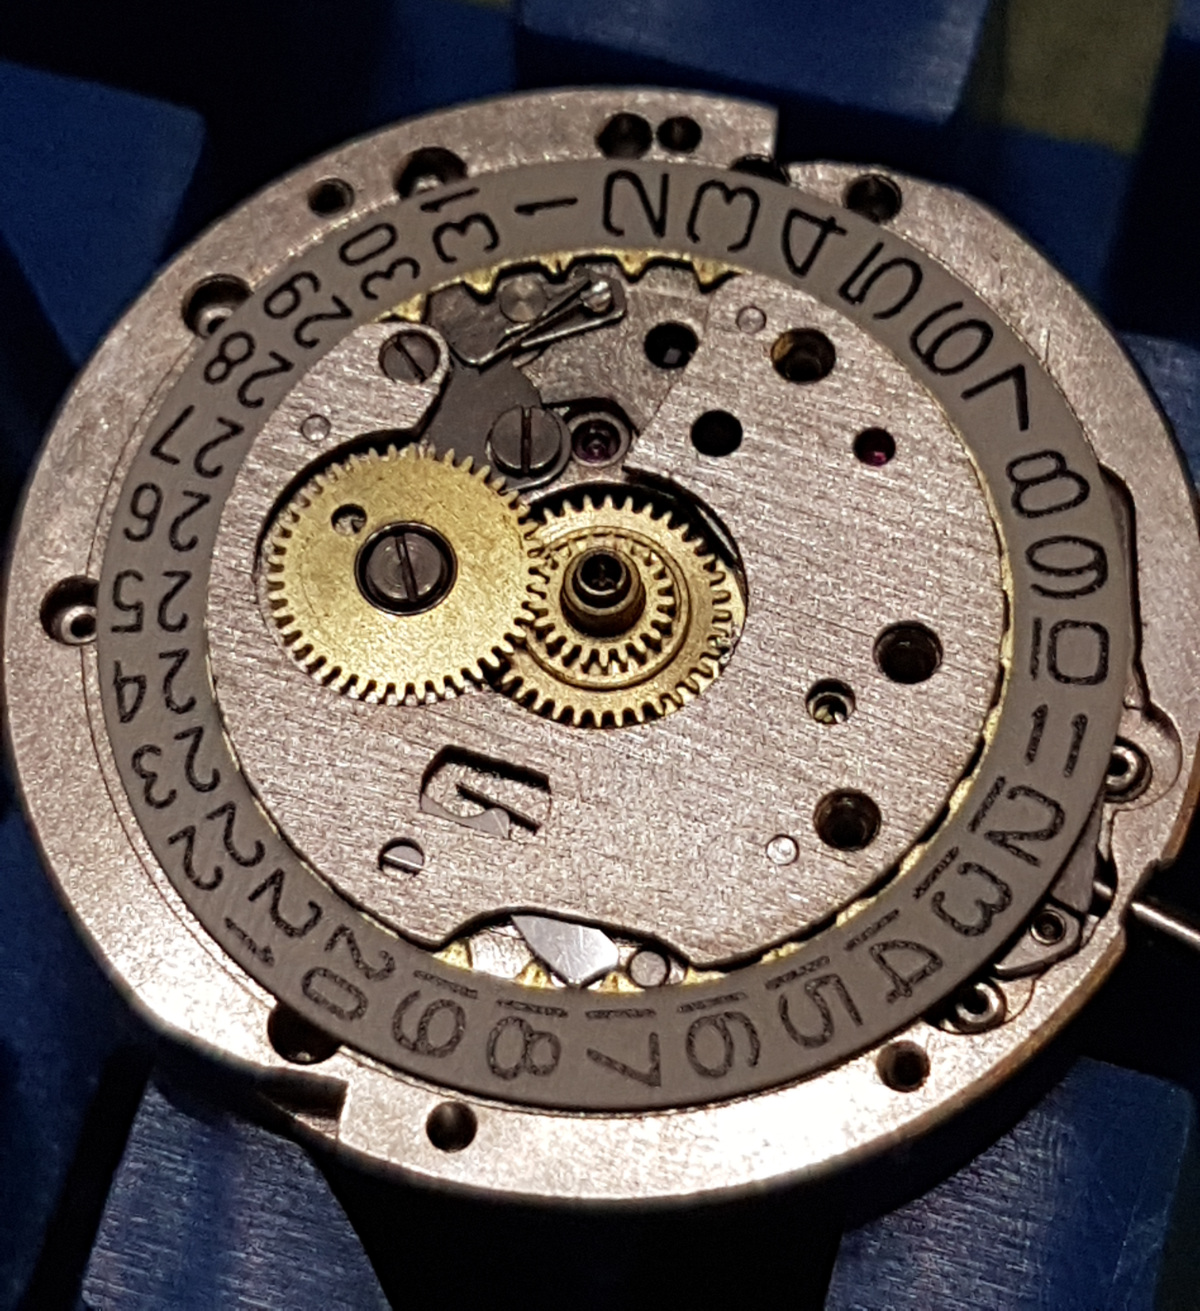 Repairing Slava 2414 movement